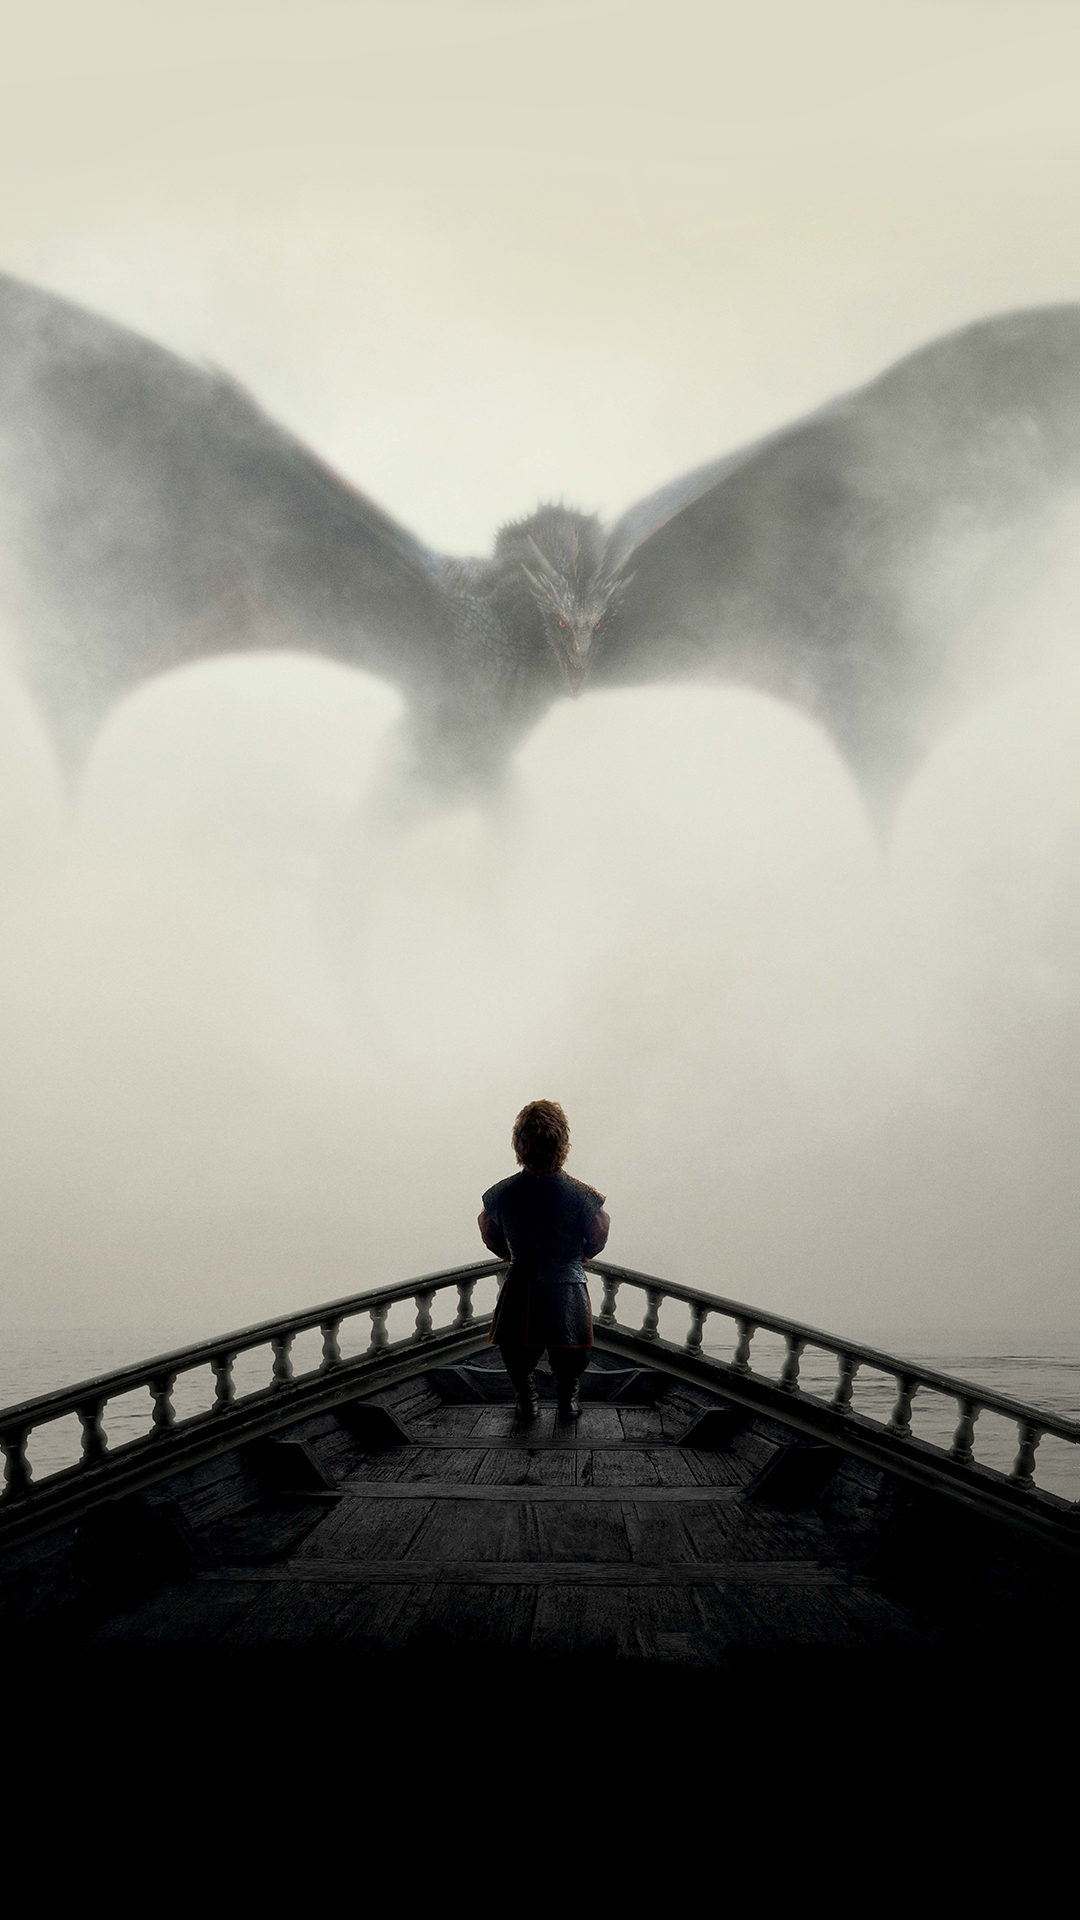 Ultra Hd Game Of Thrones Wallpaper For Your Mobile Phone 0395